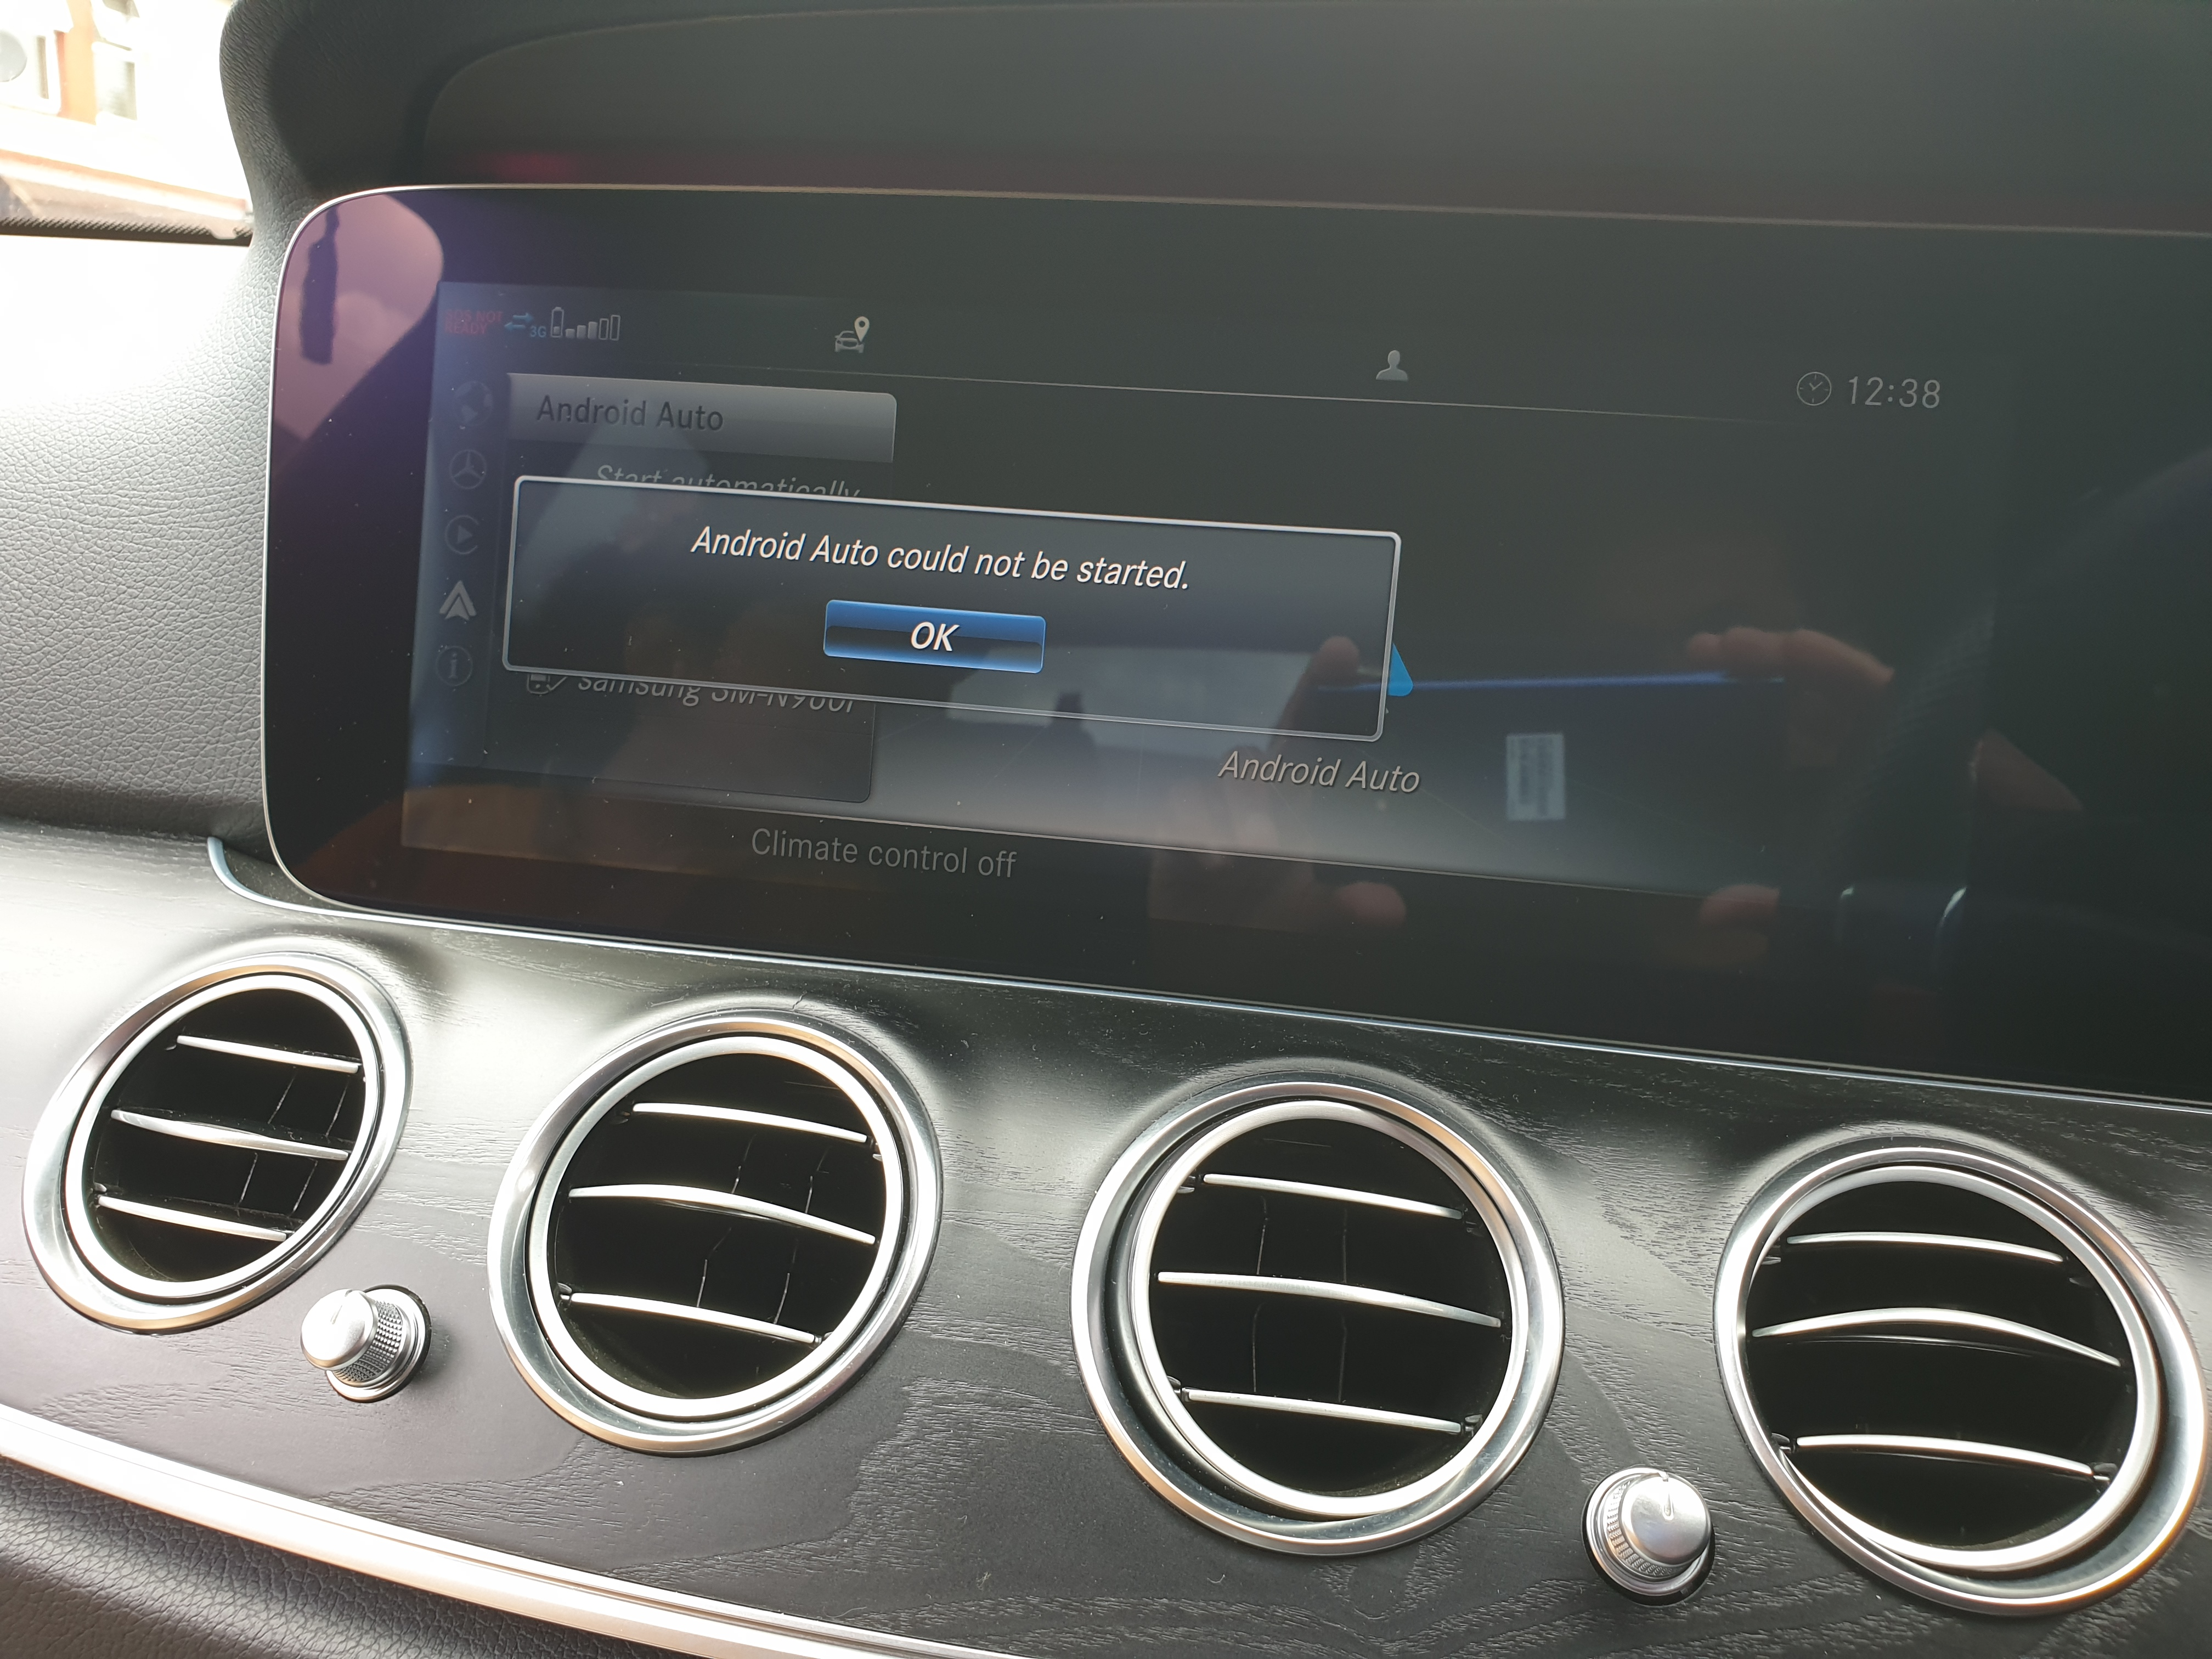 Android auto is not working, i have Samsung 9, whenever i